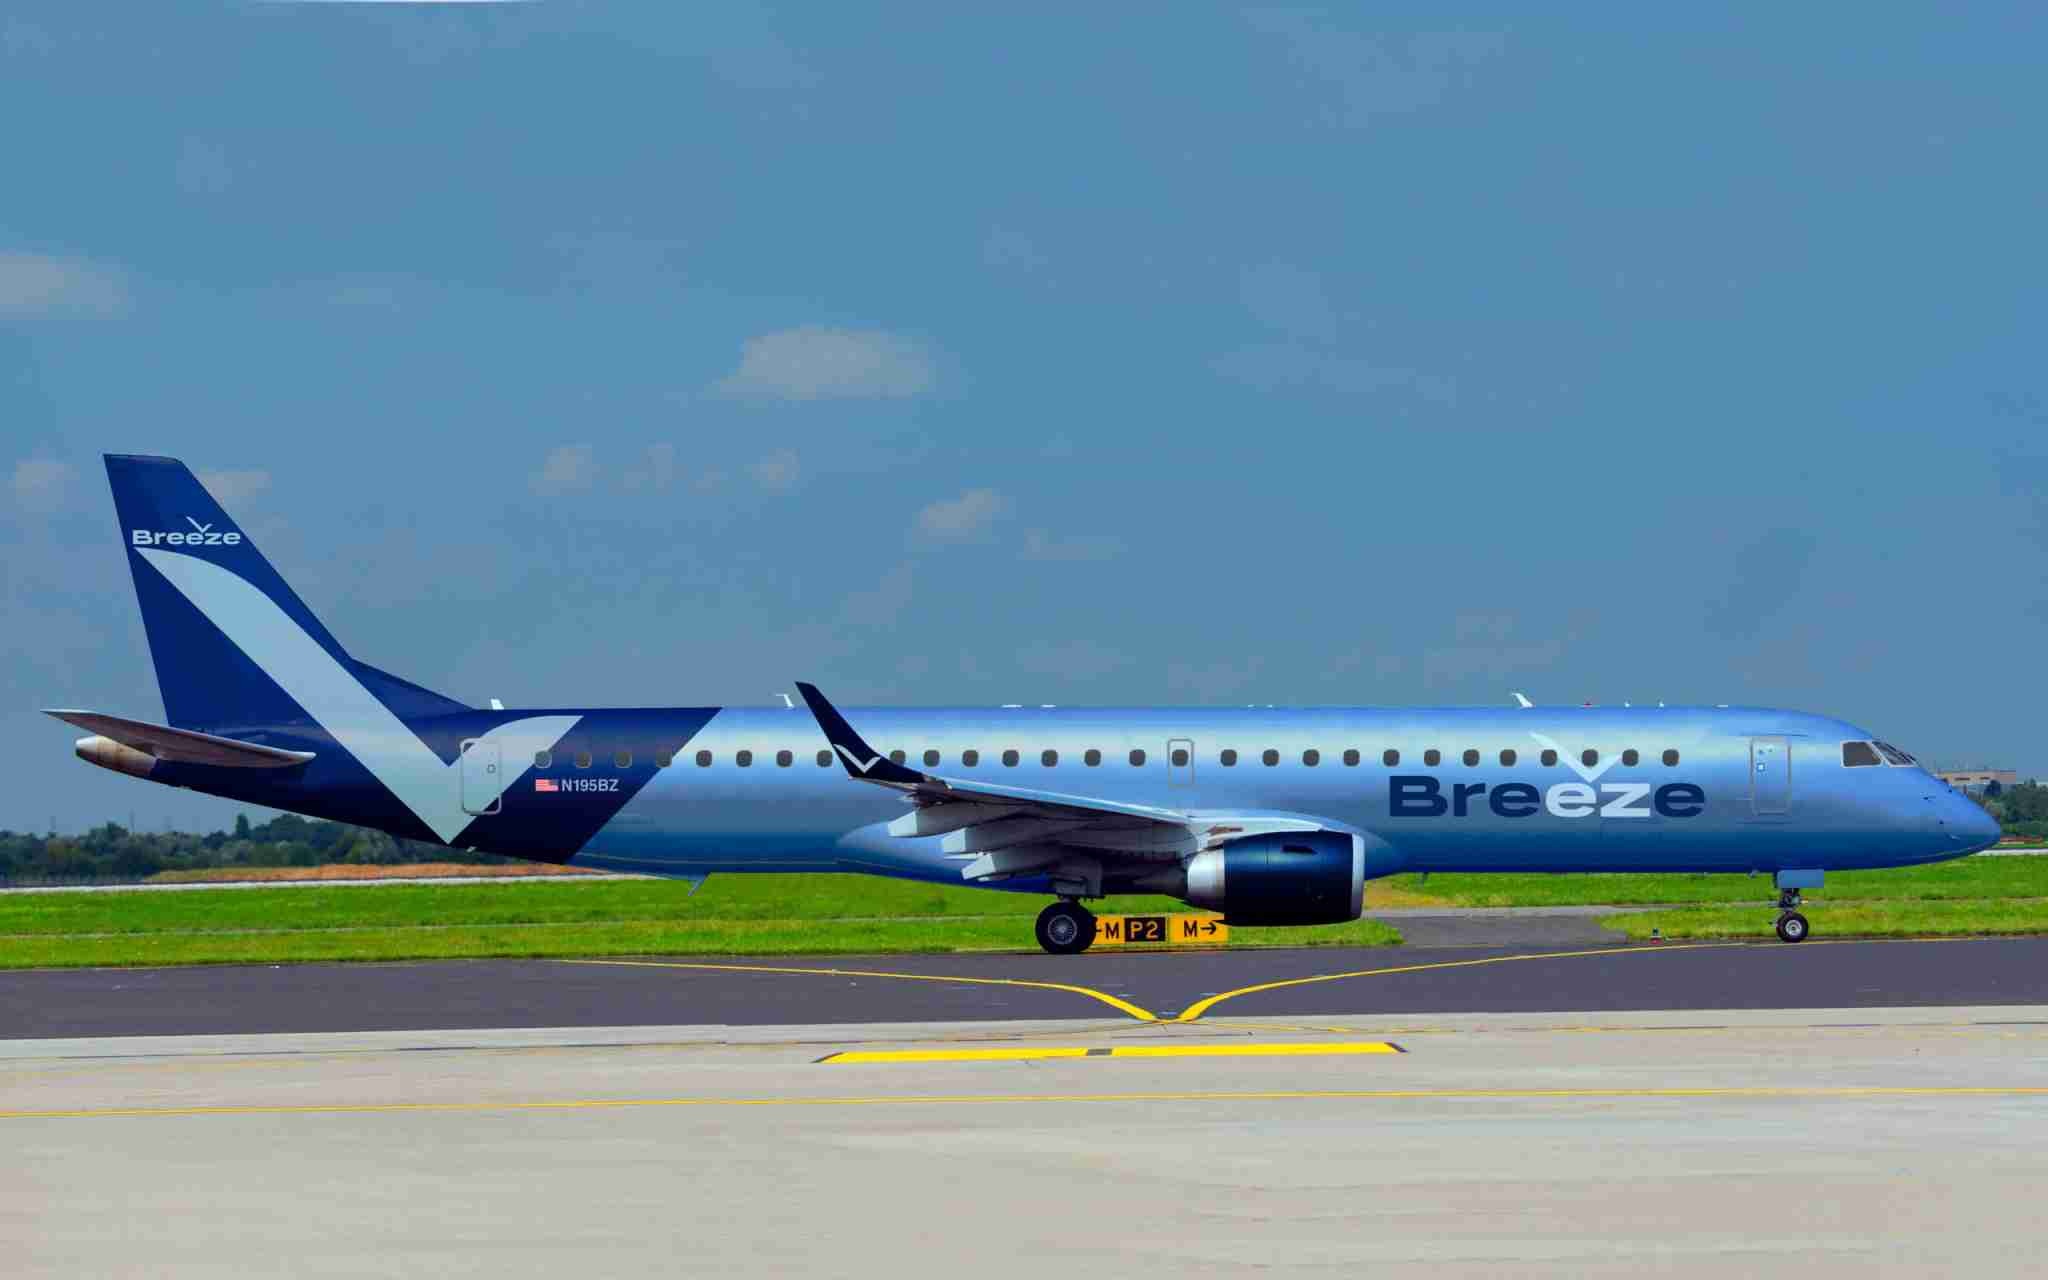 A rendering of an Embraer E195 in the planned livery for start-up carrier Breeze Airways. (Image courtesy of Breeze Airways.)